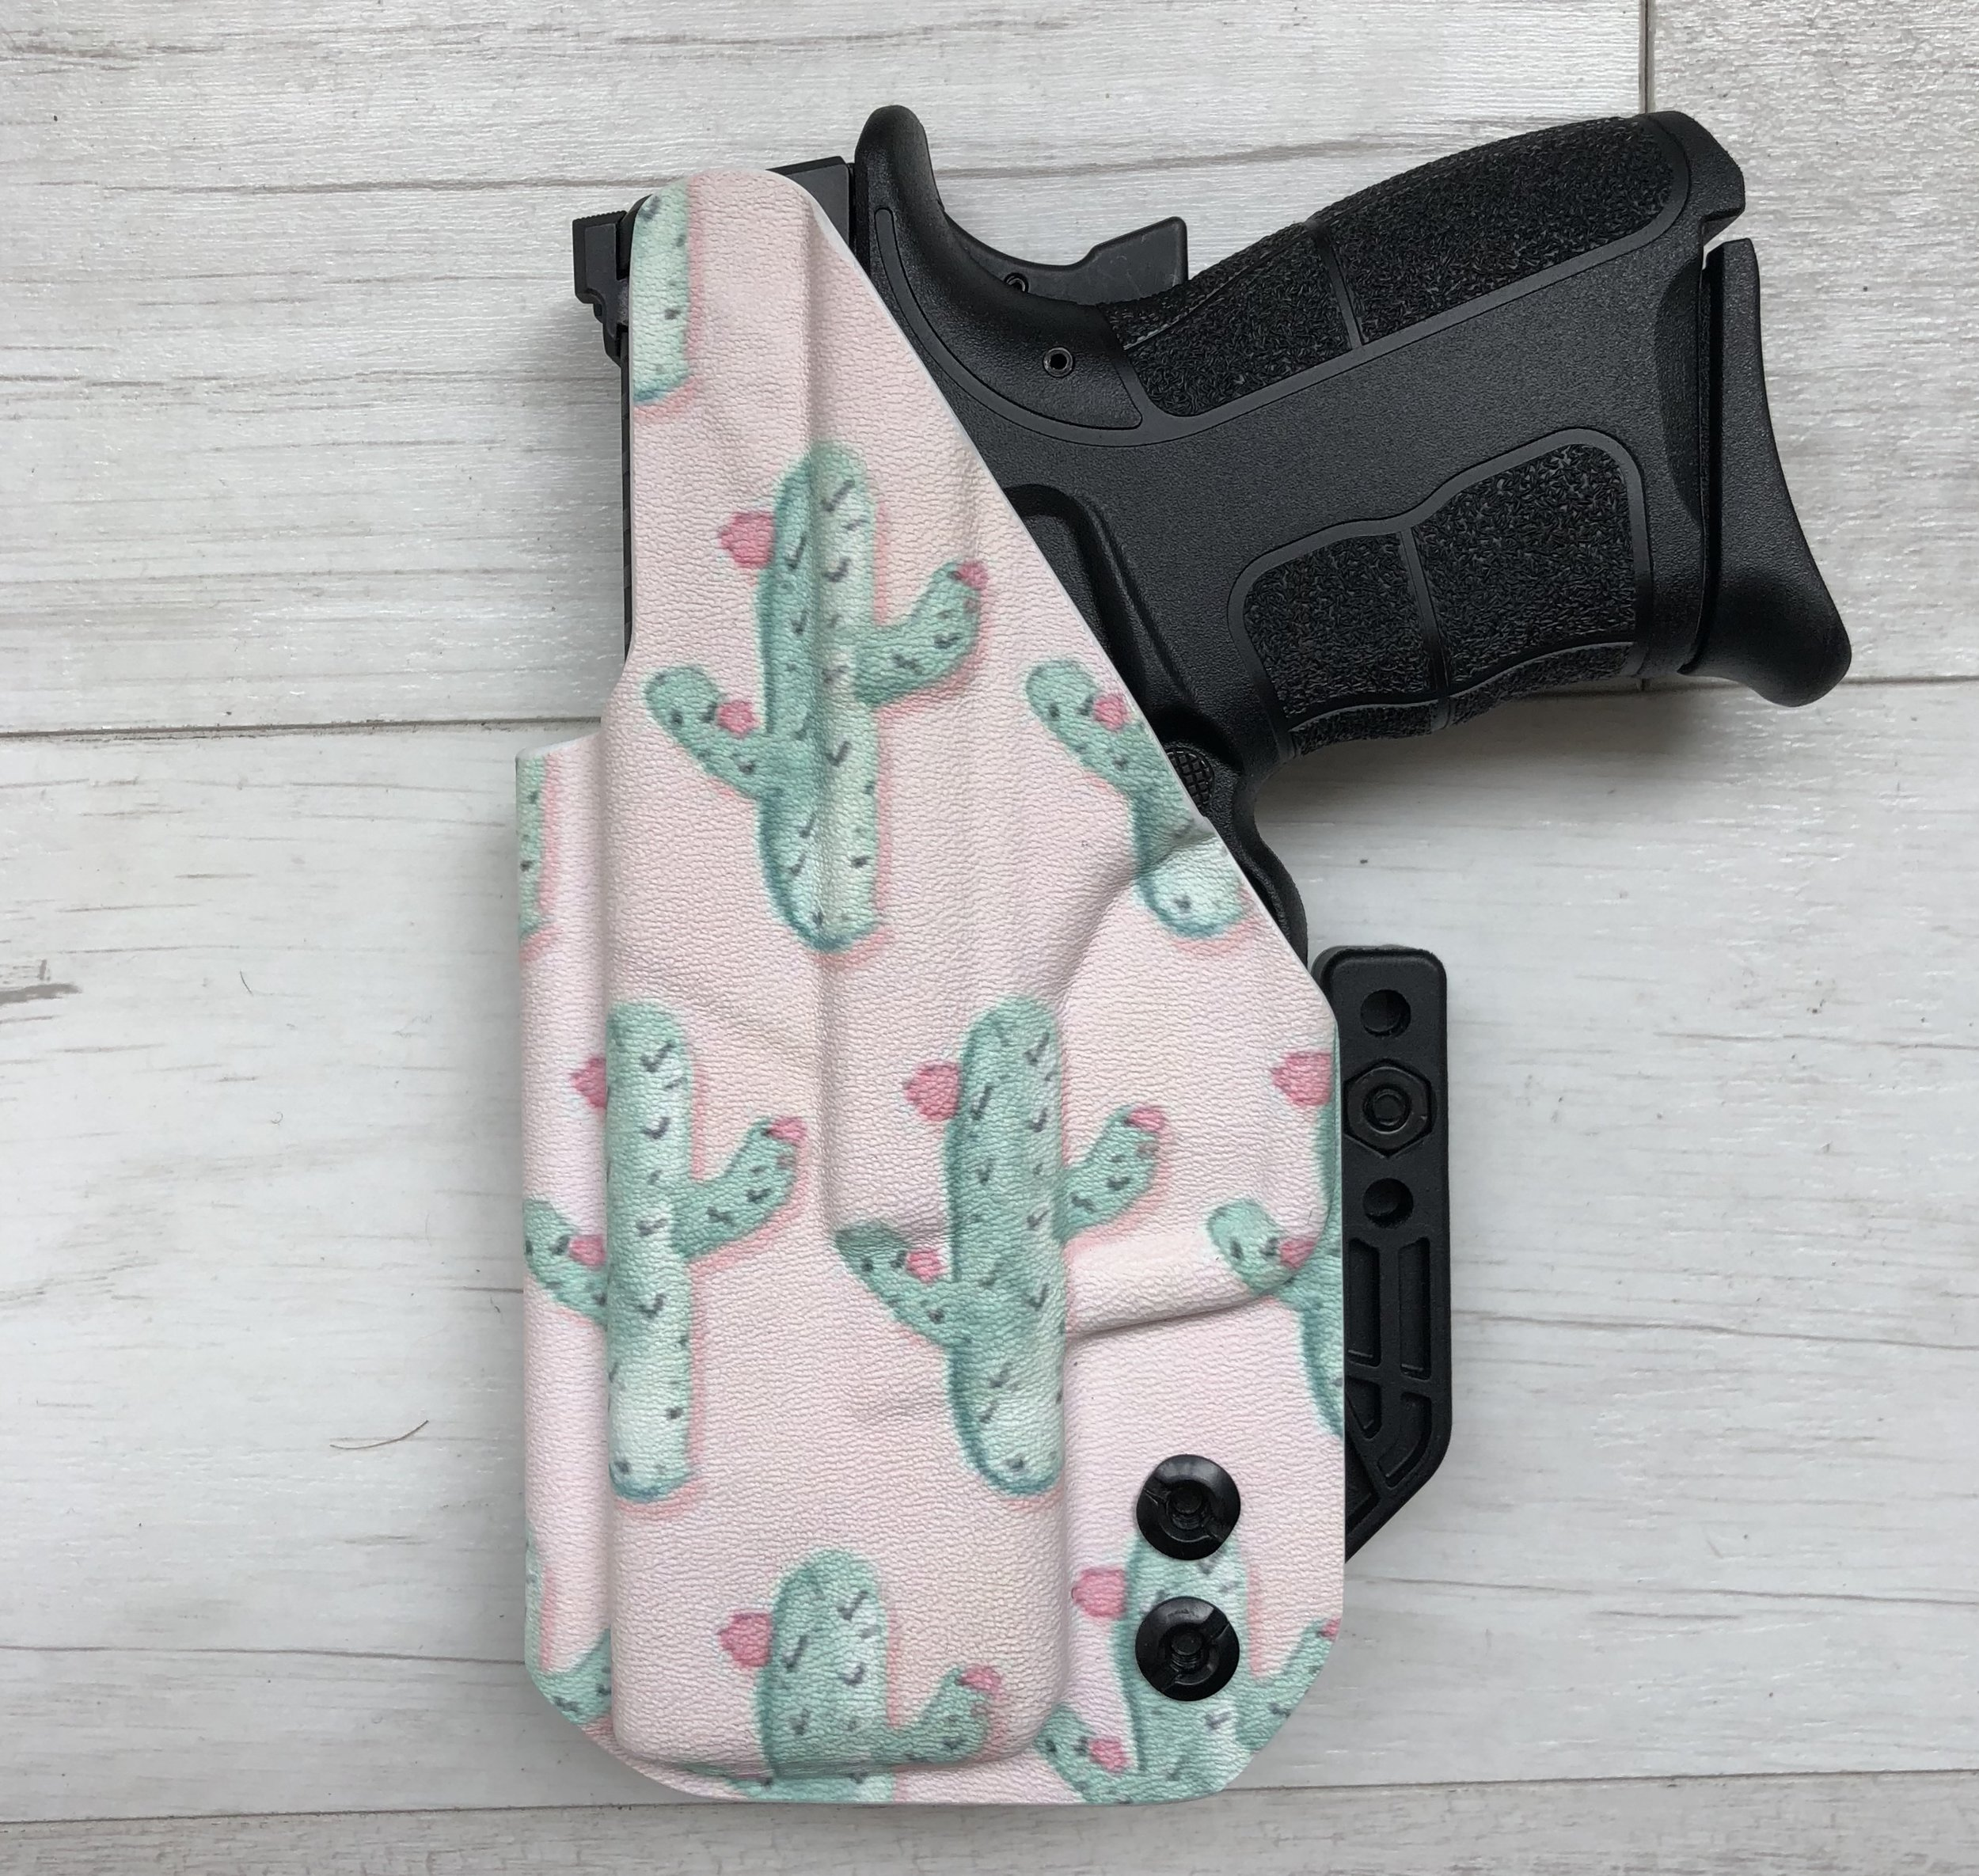 Pink Cactus Wingman Holster with FabriClip from Southern Bullets x Wingman Holsters, $80